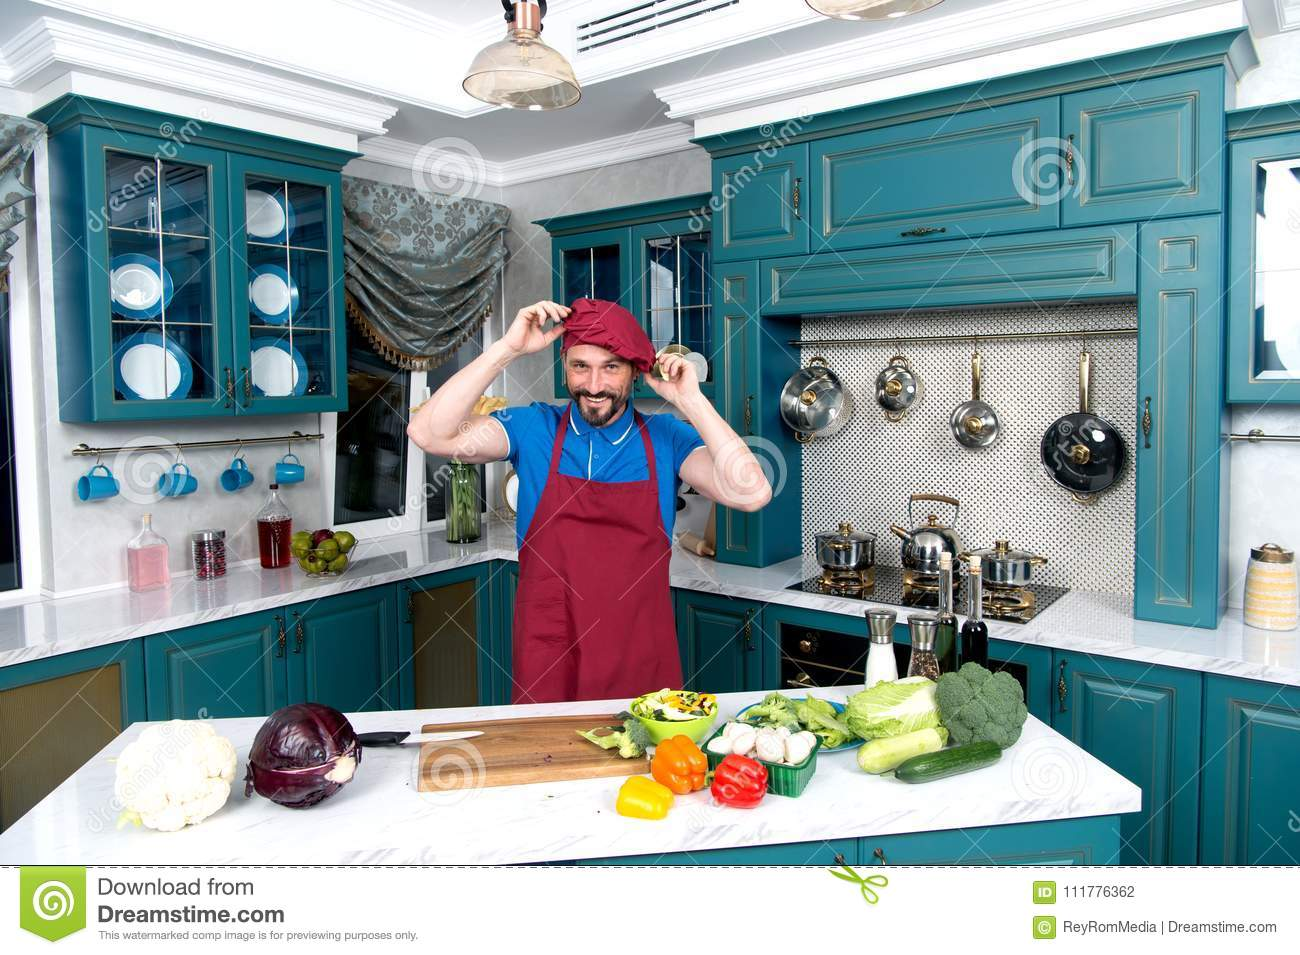 Guy at kitchen dressing apron and hat. Chef wears red uniform. Man dressed on red hat on hand.